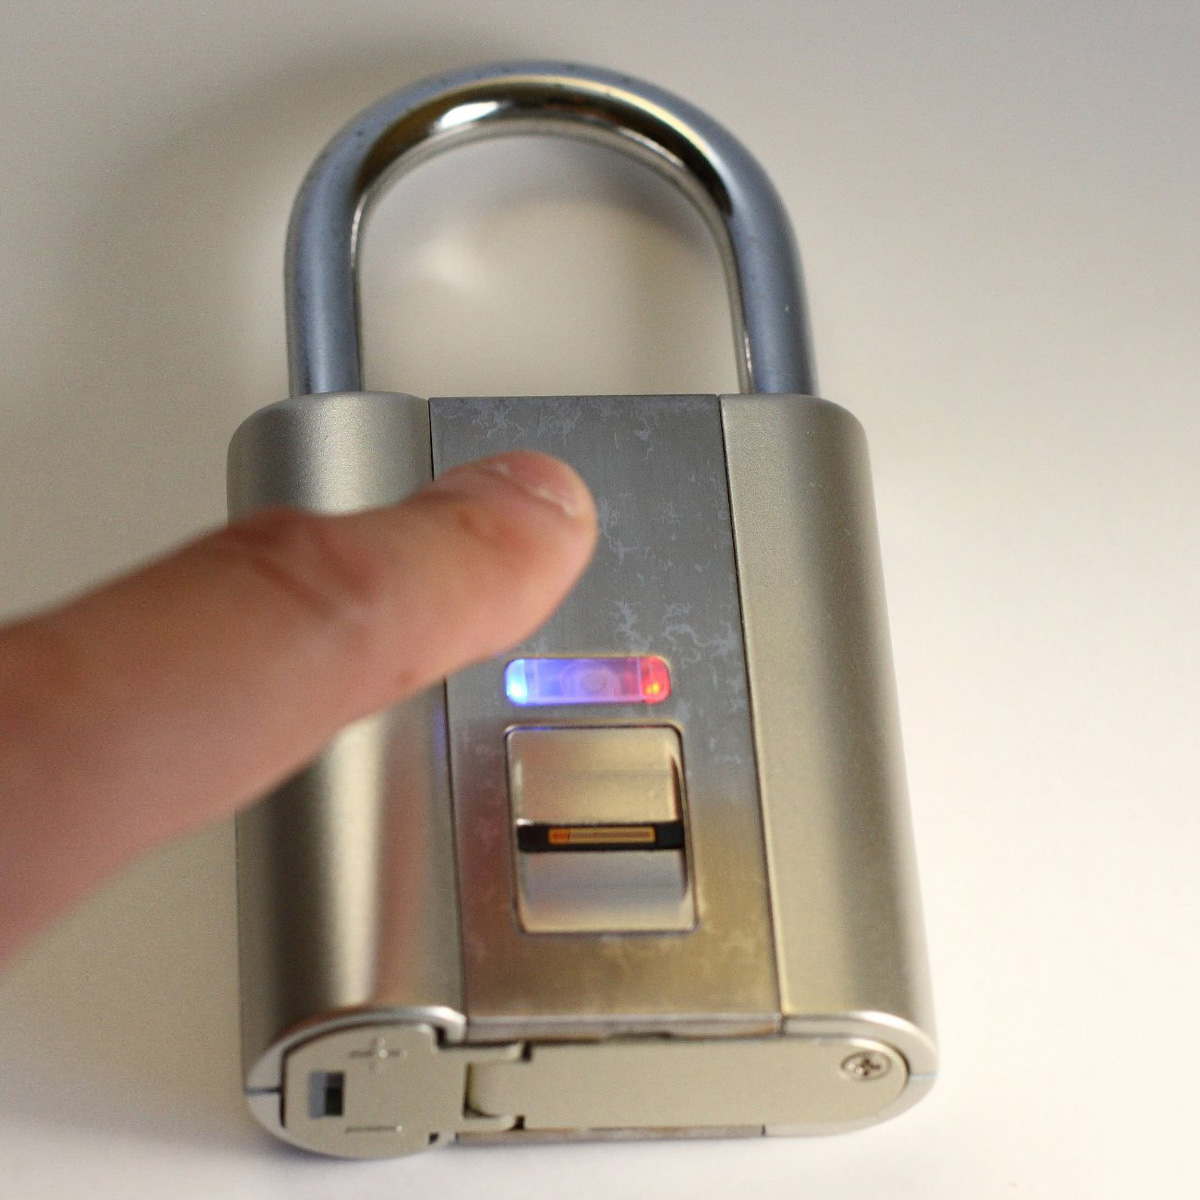 Ifingerlock Biometric Fingerprint Padlock